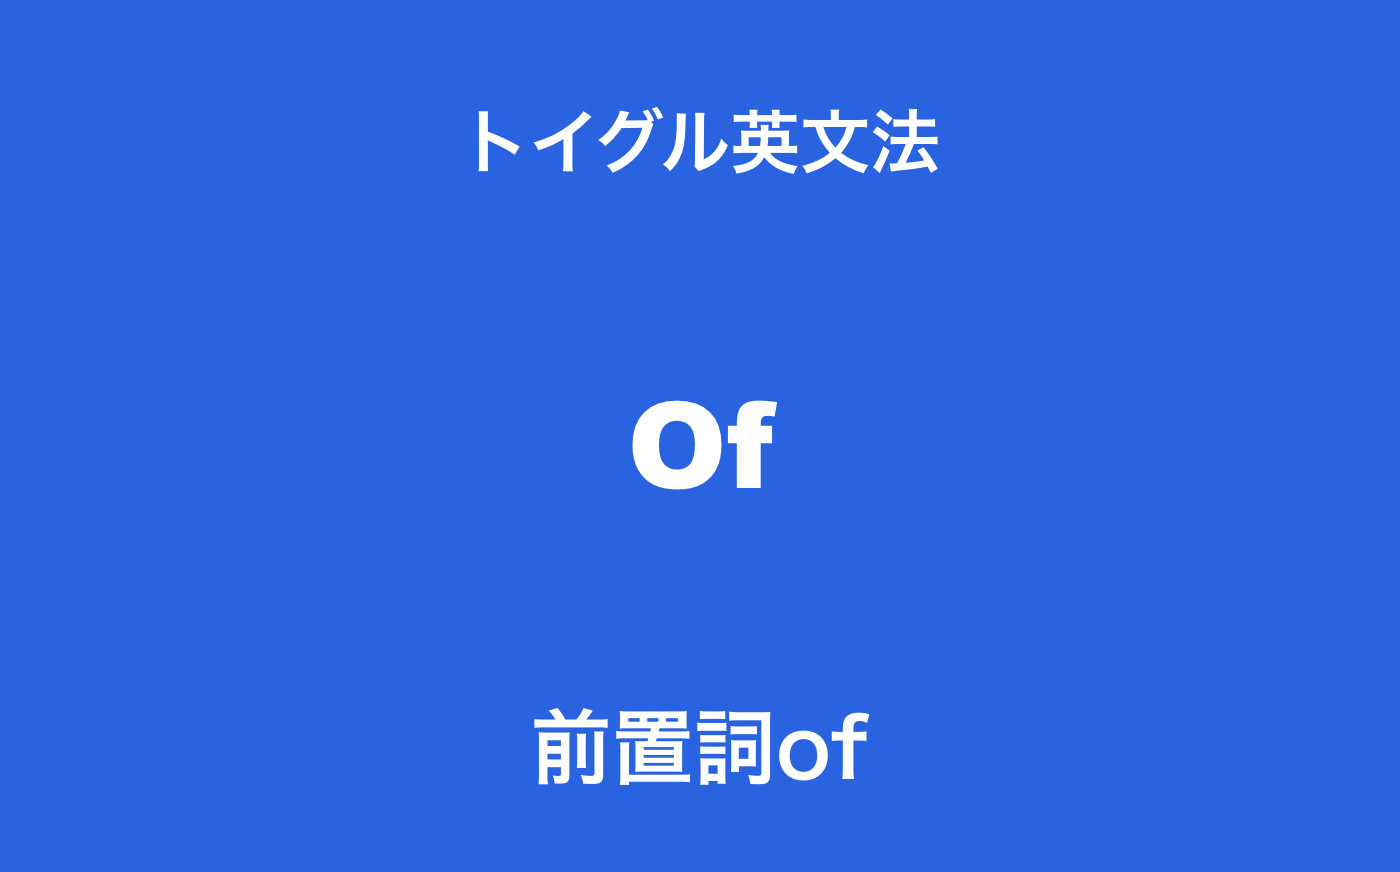 ask out 意味